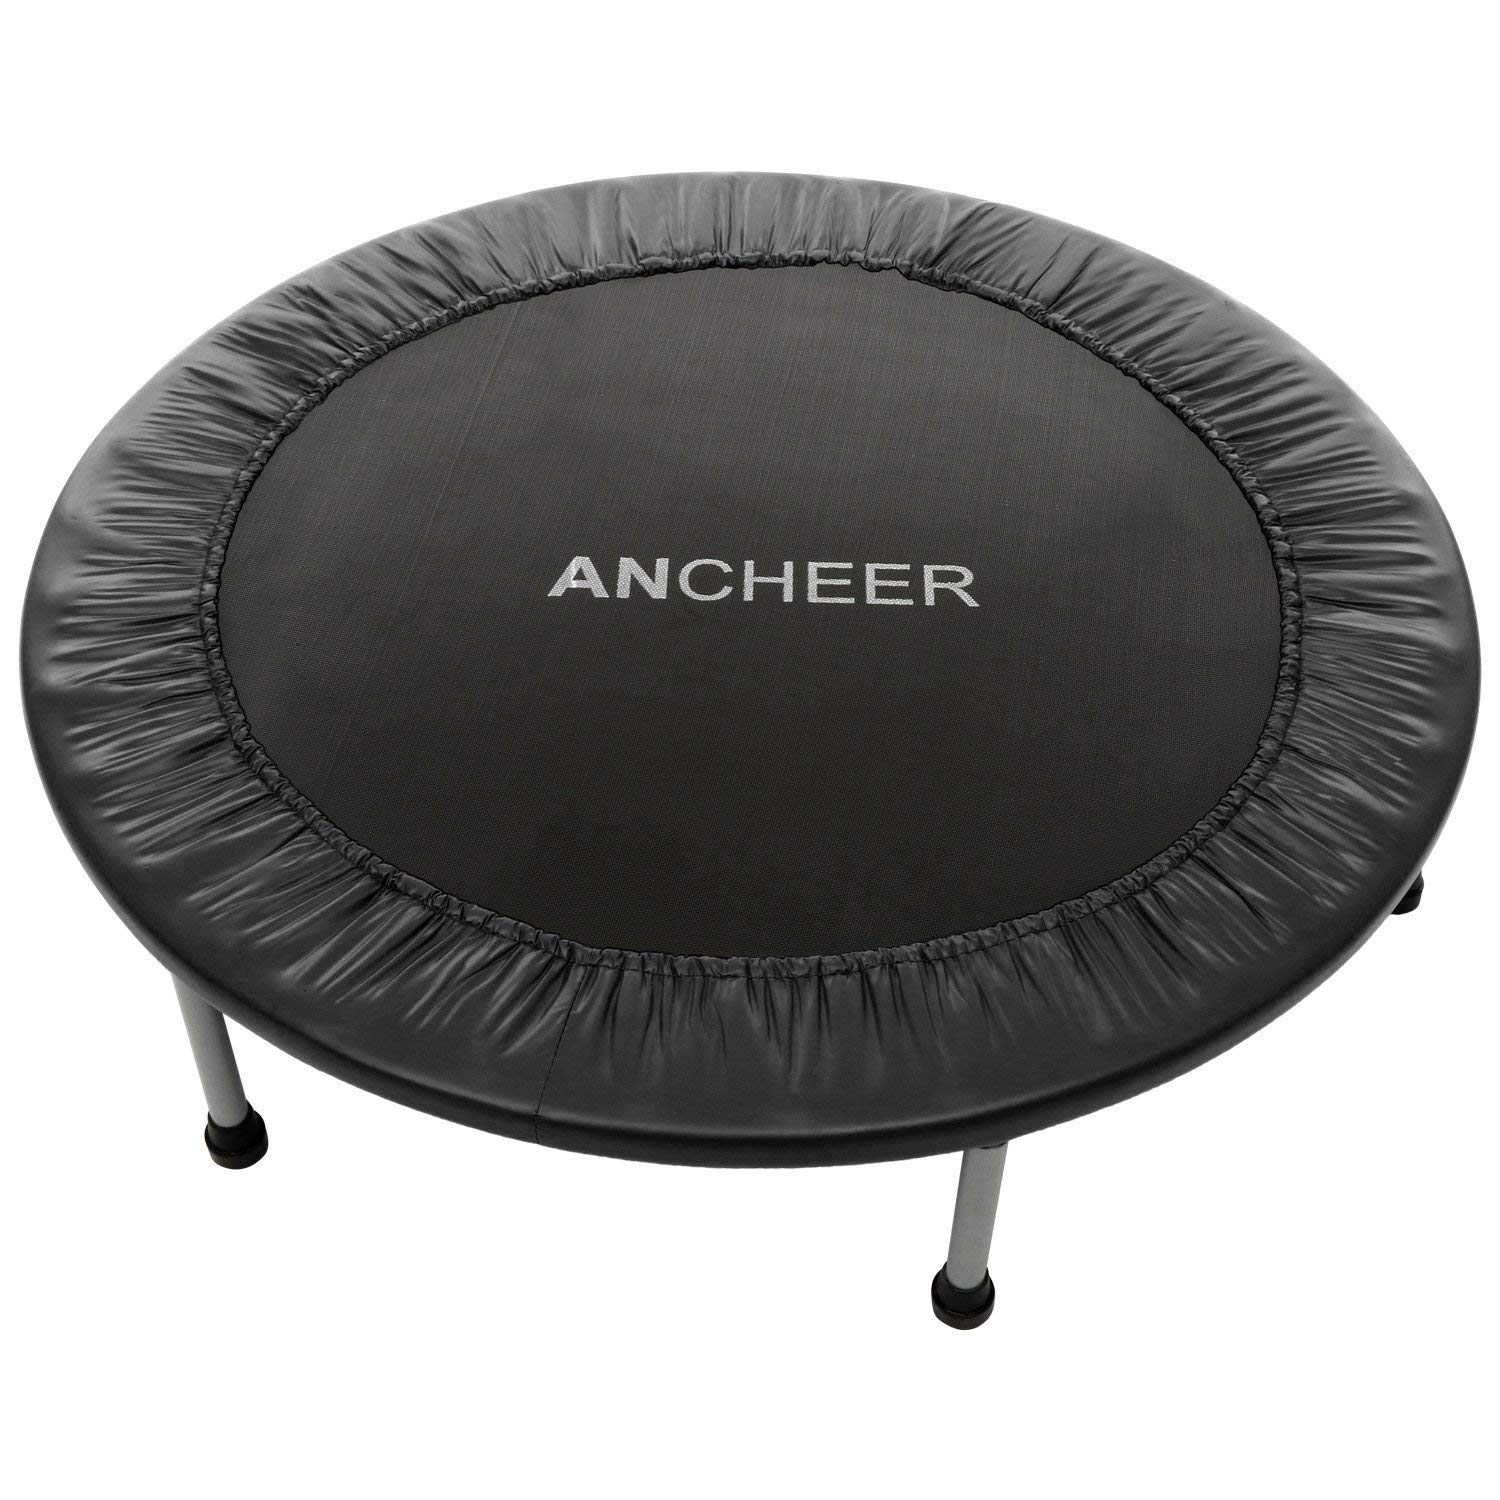 ANCHEER Max Load 220lbs Rebounder Trampoline with Safety Pad for Indoor Garden Workout Cardio Training (2 Sizes: 38 inch / 40 inch, Two Modes: Folding/Not Folding) (Red, 40inch - Folding one time) by ANCHEER (Image #1)